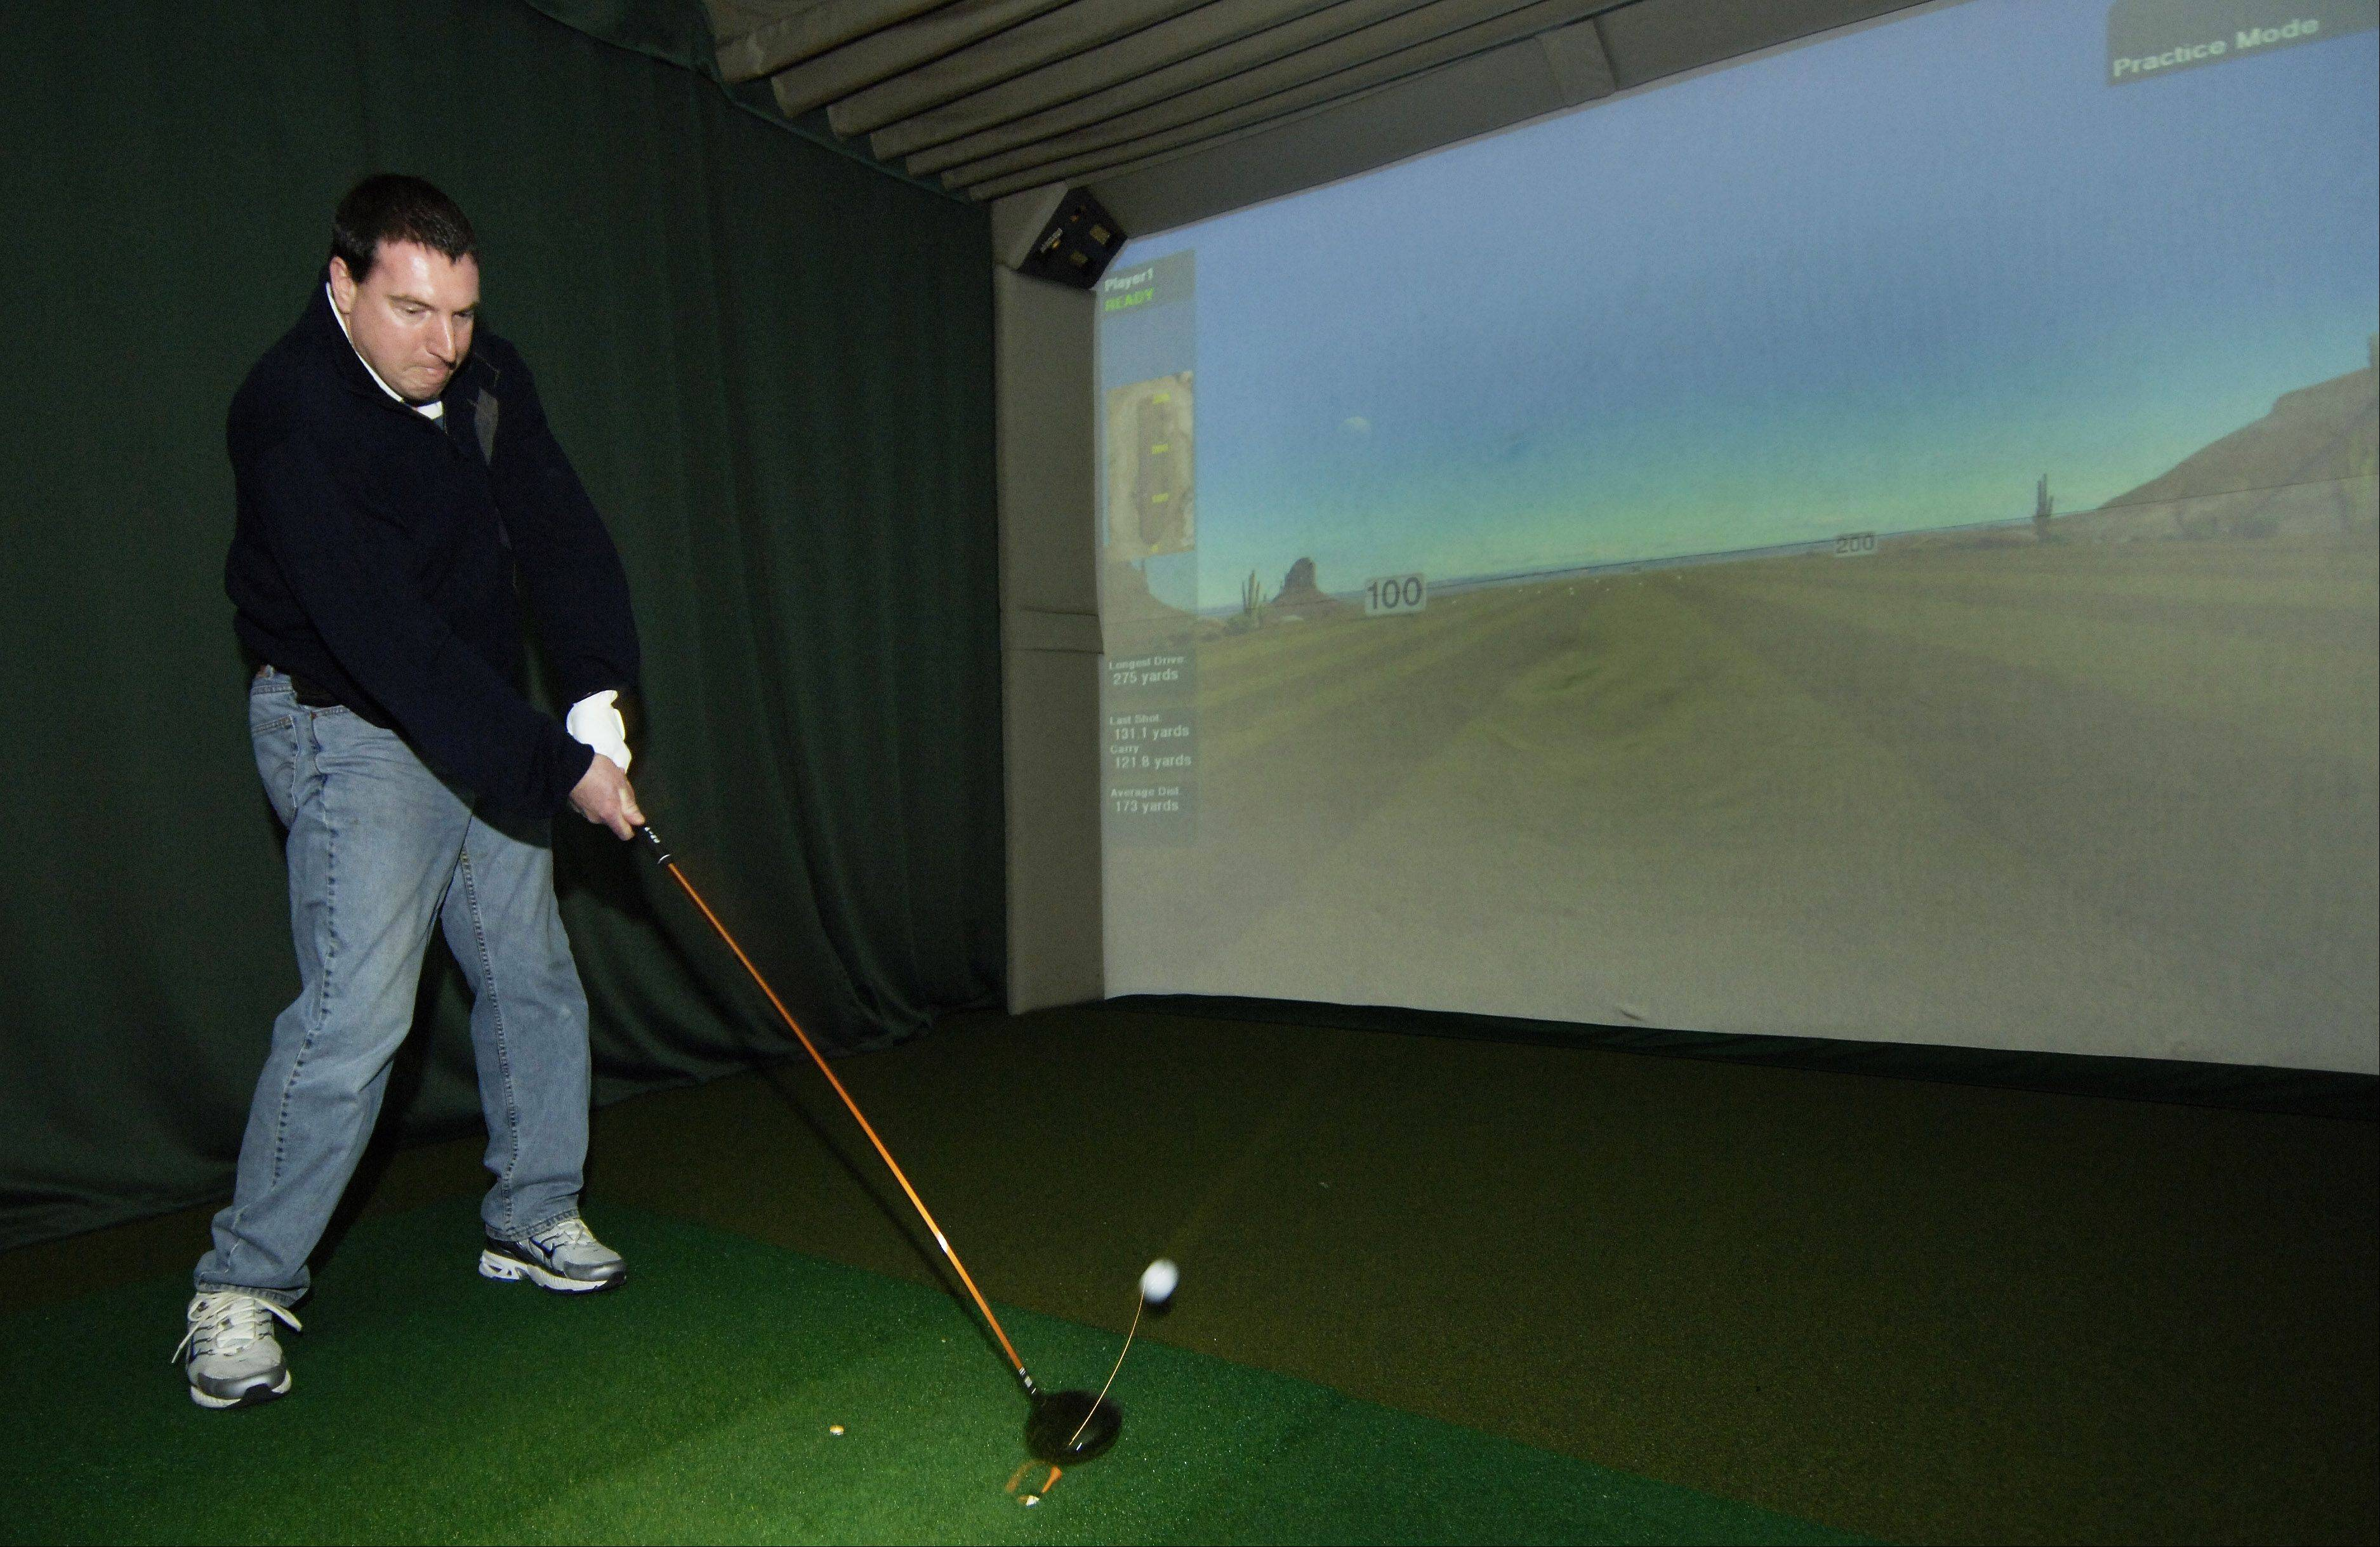 Noel Hughes of Chicago takes a swing while using the simulator of the Vulcan Golf Lab, Geneva, at the Chicago Golf Show at the Rosemont Convention Center.